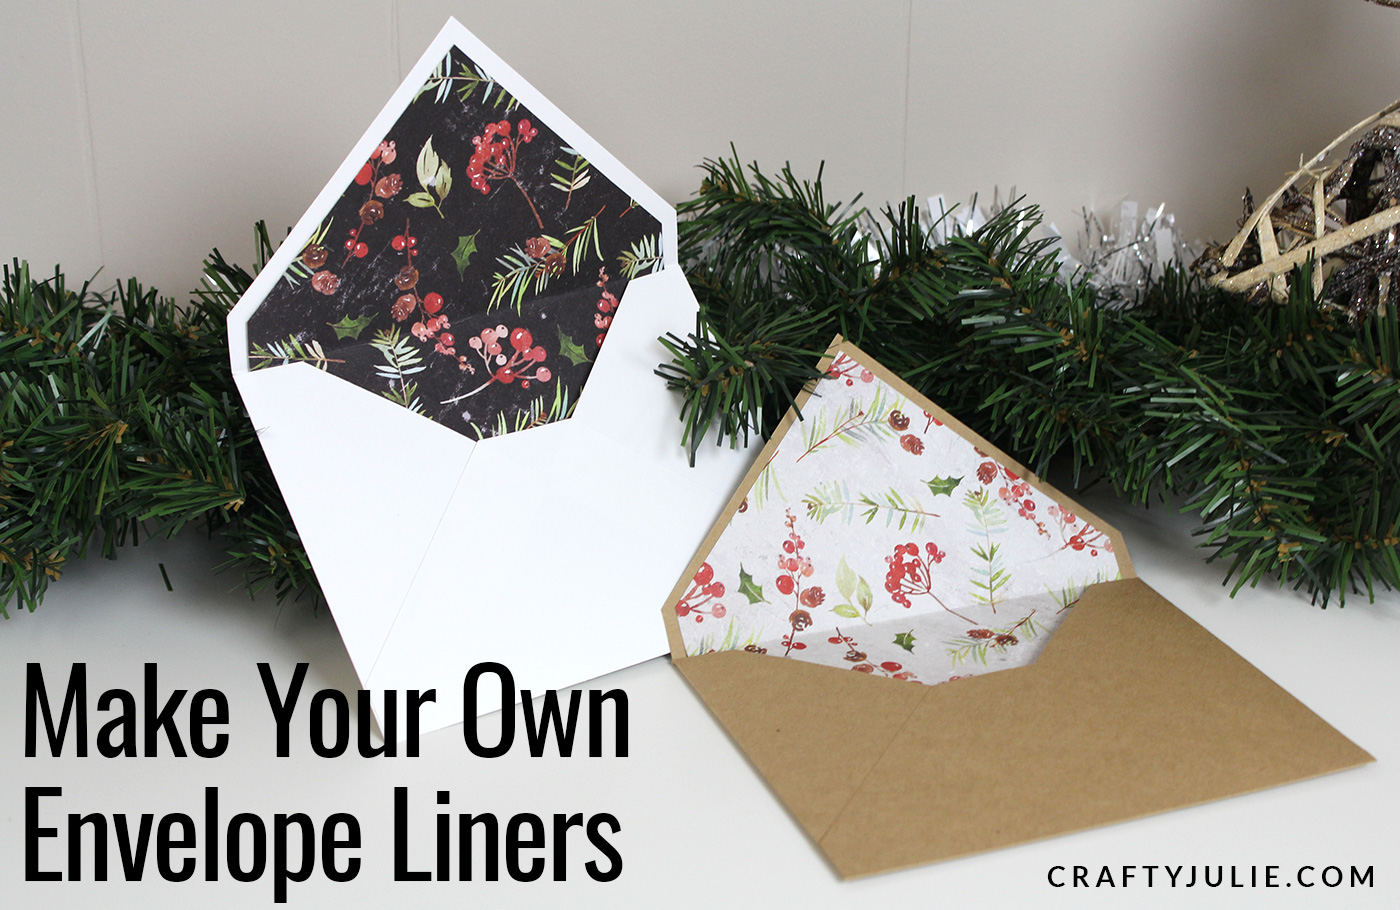 two handmade envelopes with custom liners attached